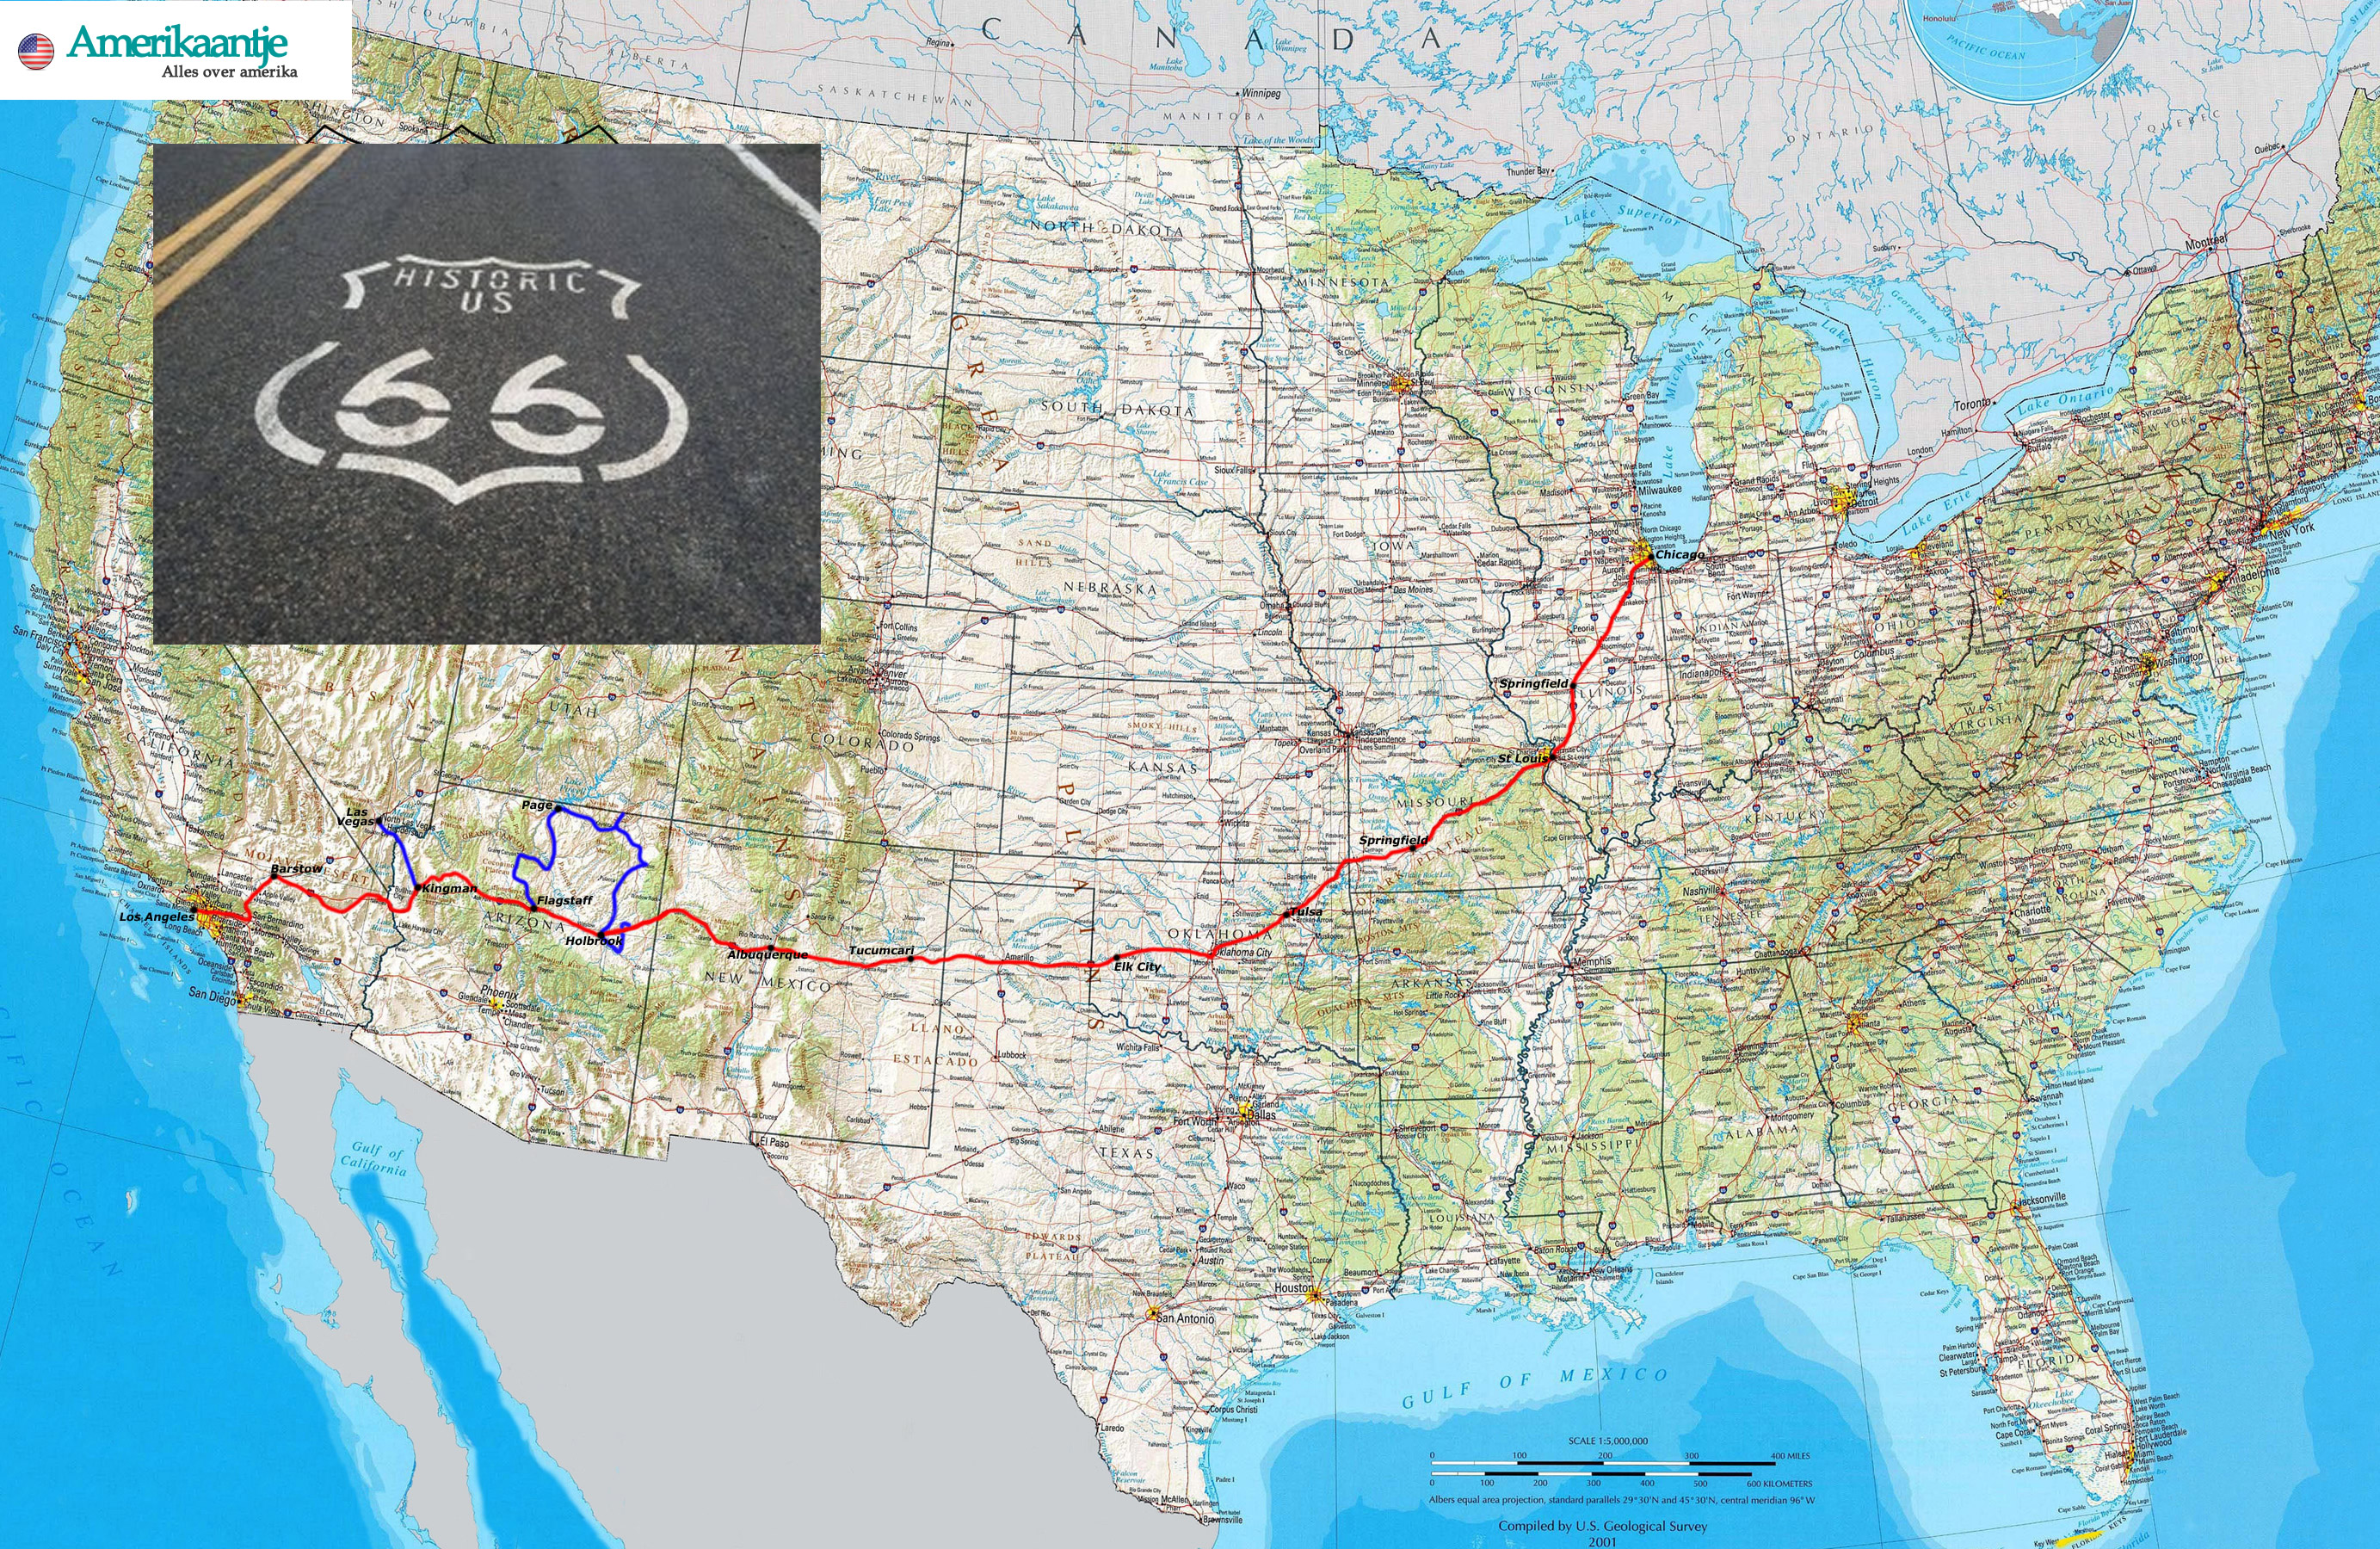 map of america route 66 with Route 66 Reizen on Nevada furthermore 6021895645 furthermore The Coolest Places On Earth The Abandoned Town Of Kolmanskop Namibia Pictures additionally San Francisco California Japanese Tea Garden 16 13 84 in addition Ancient Greeks In River Plate.